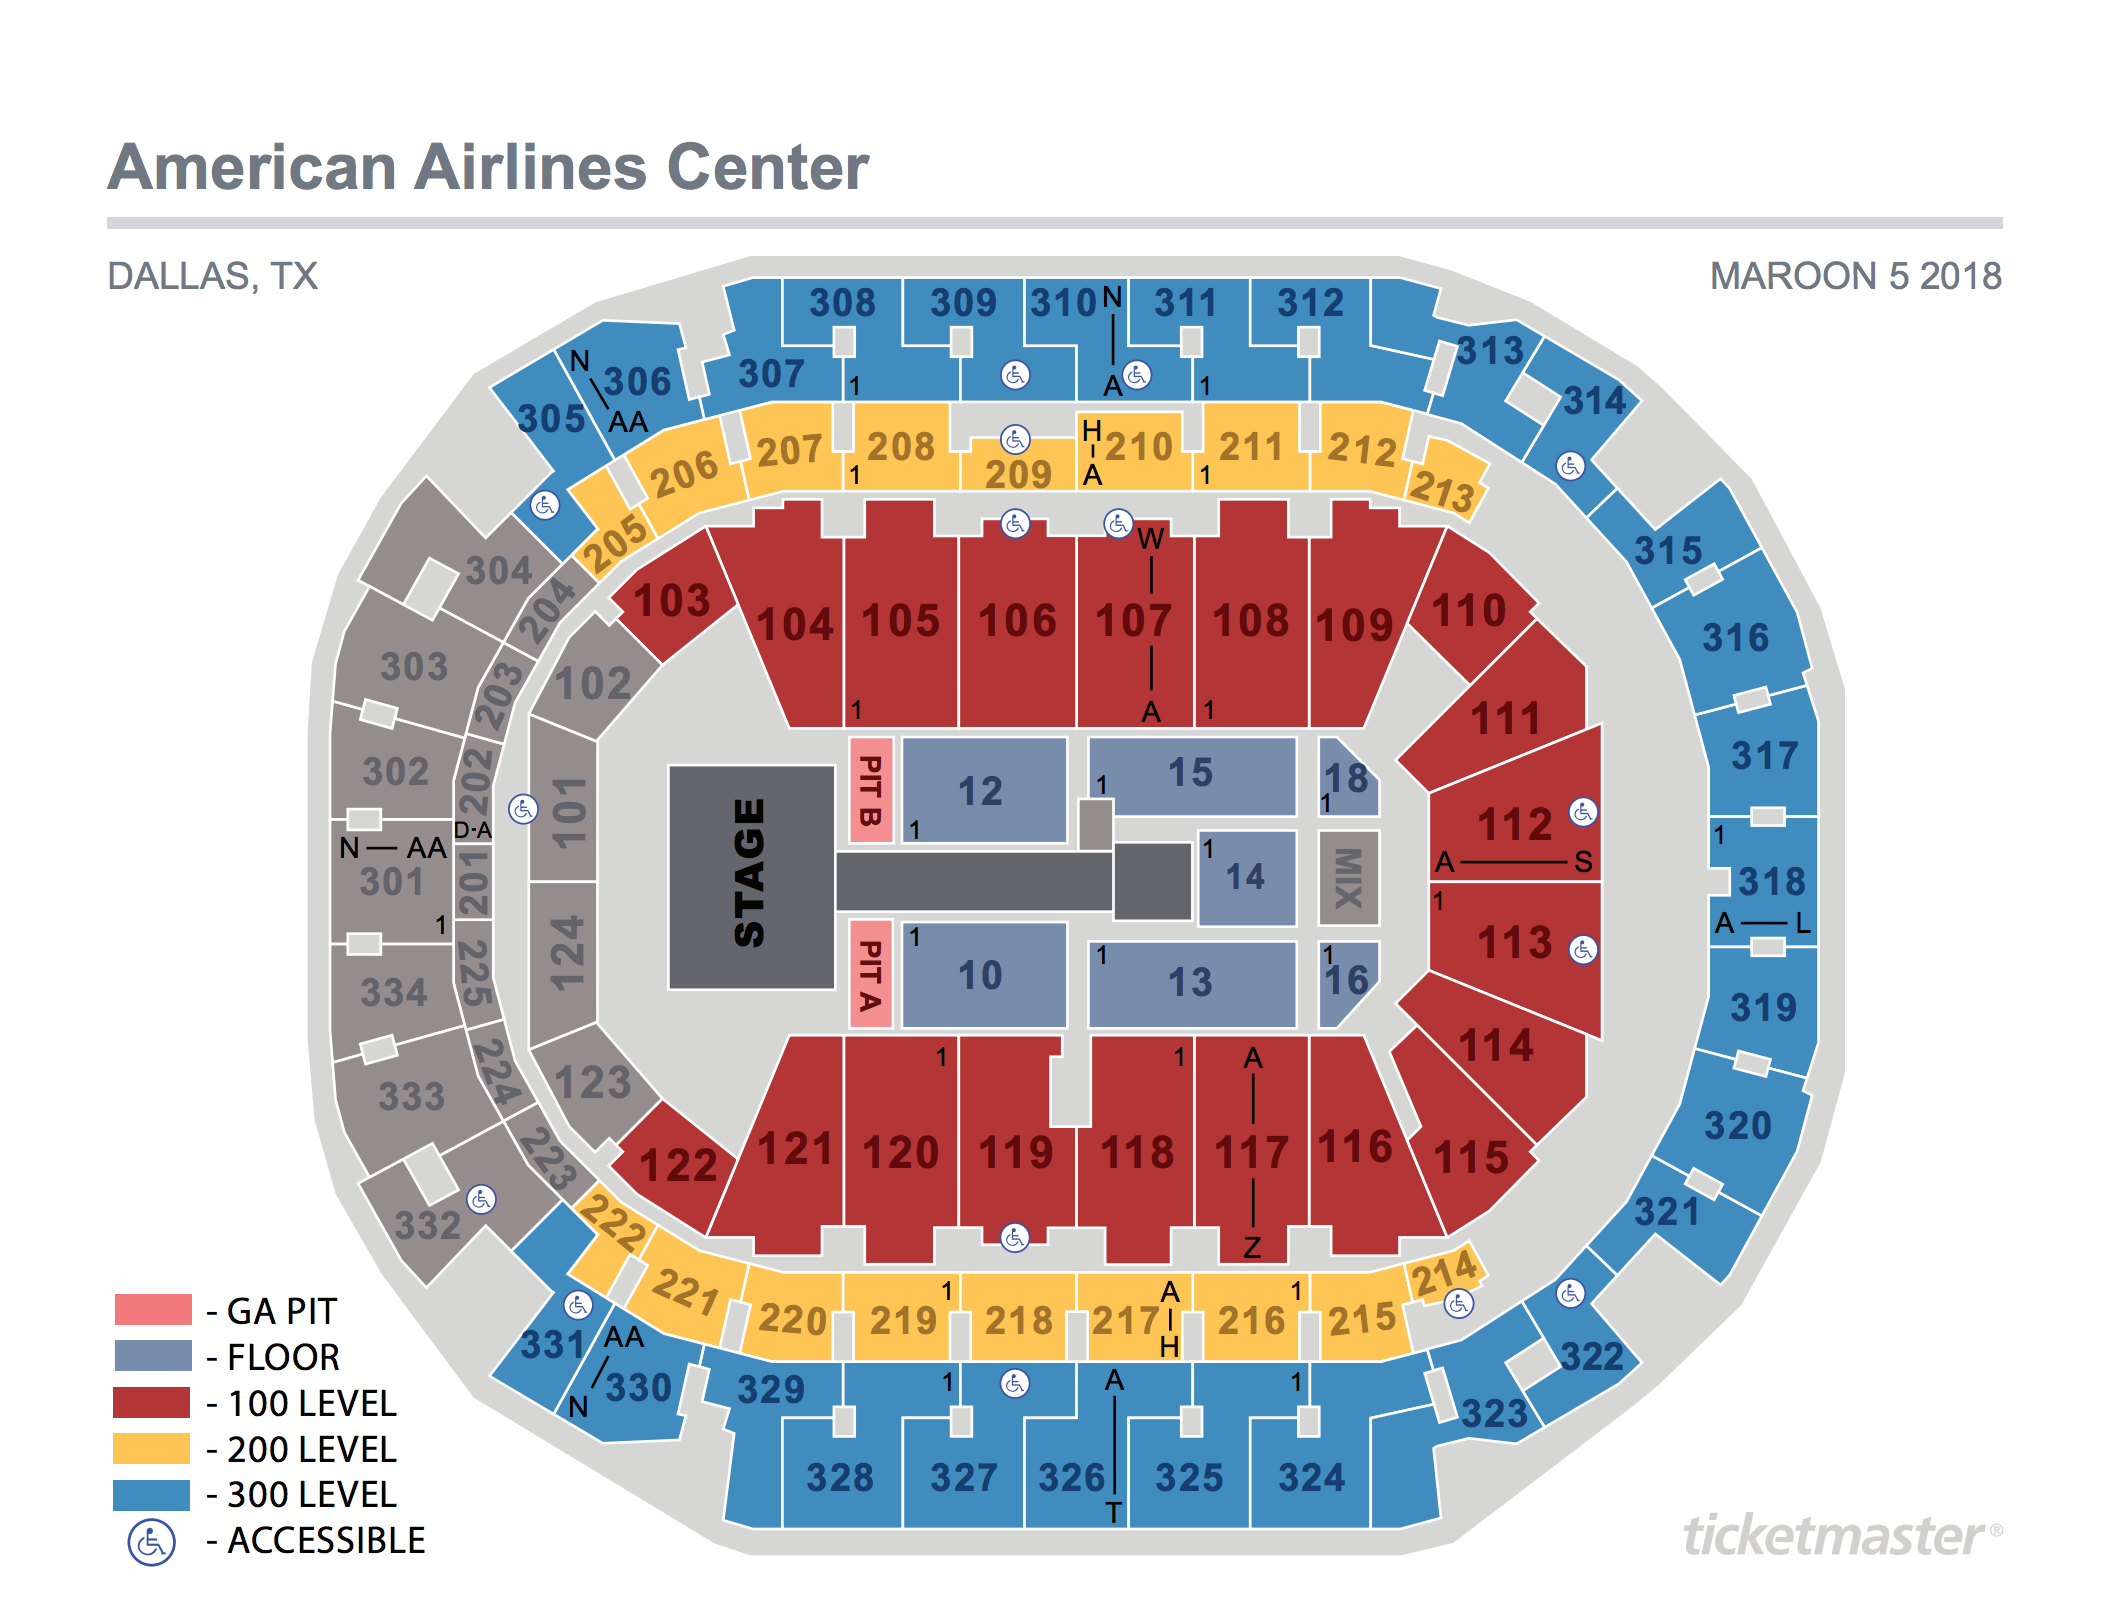 Maroon 5 Seating Map